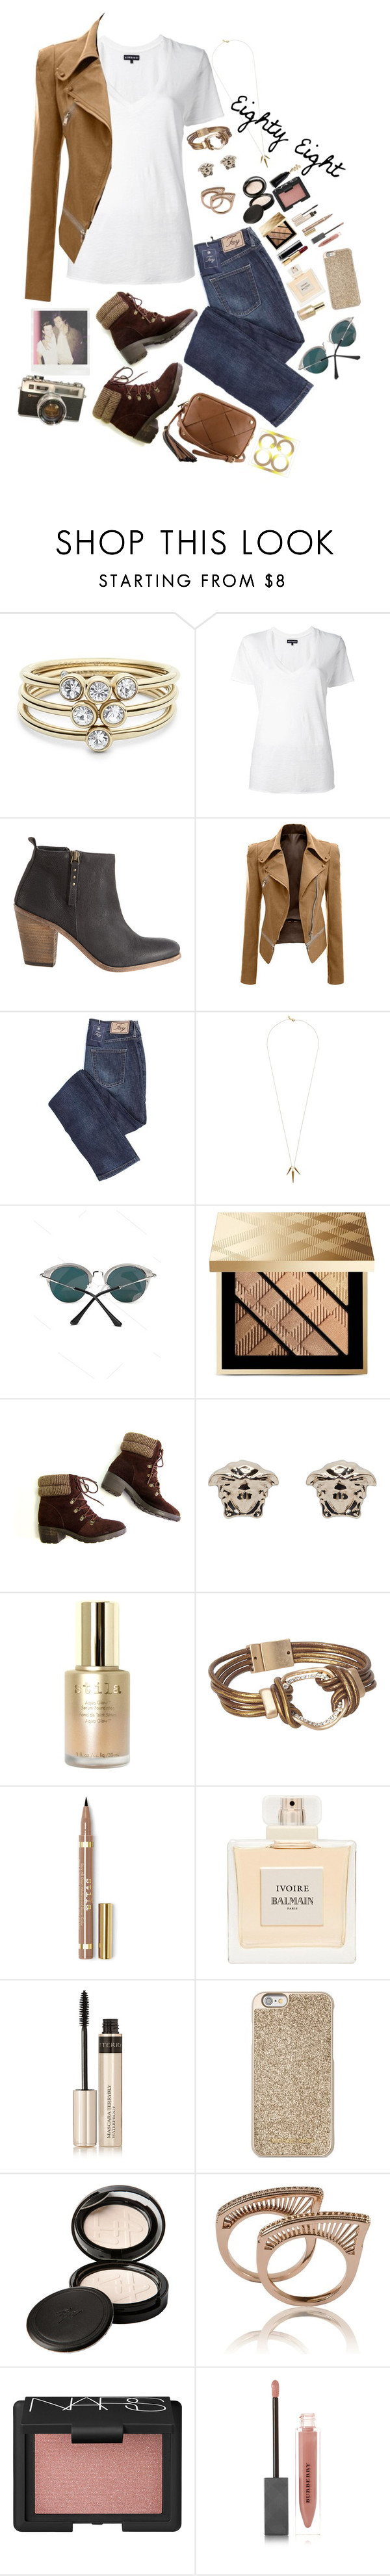 """""""~ Eighty Eight ~"""" by style-and-chic-boutique ❤ liked on Polyvore featuring FOSSIL, NSF, Hoss Intropia, Gorjana, Burberry, Versace, Stila, Balmain, By Terry and Michael Kors"""